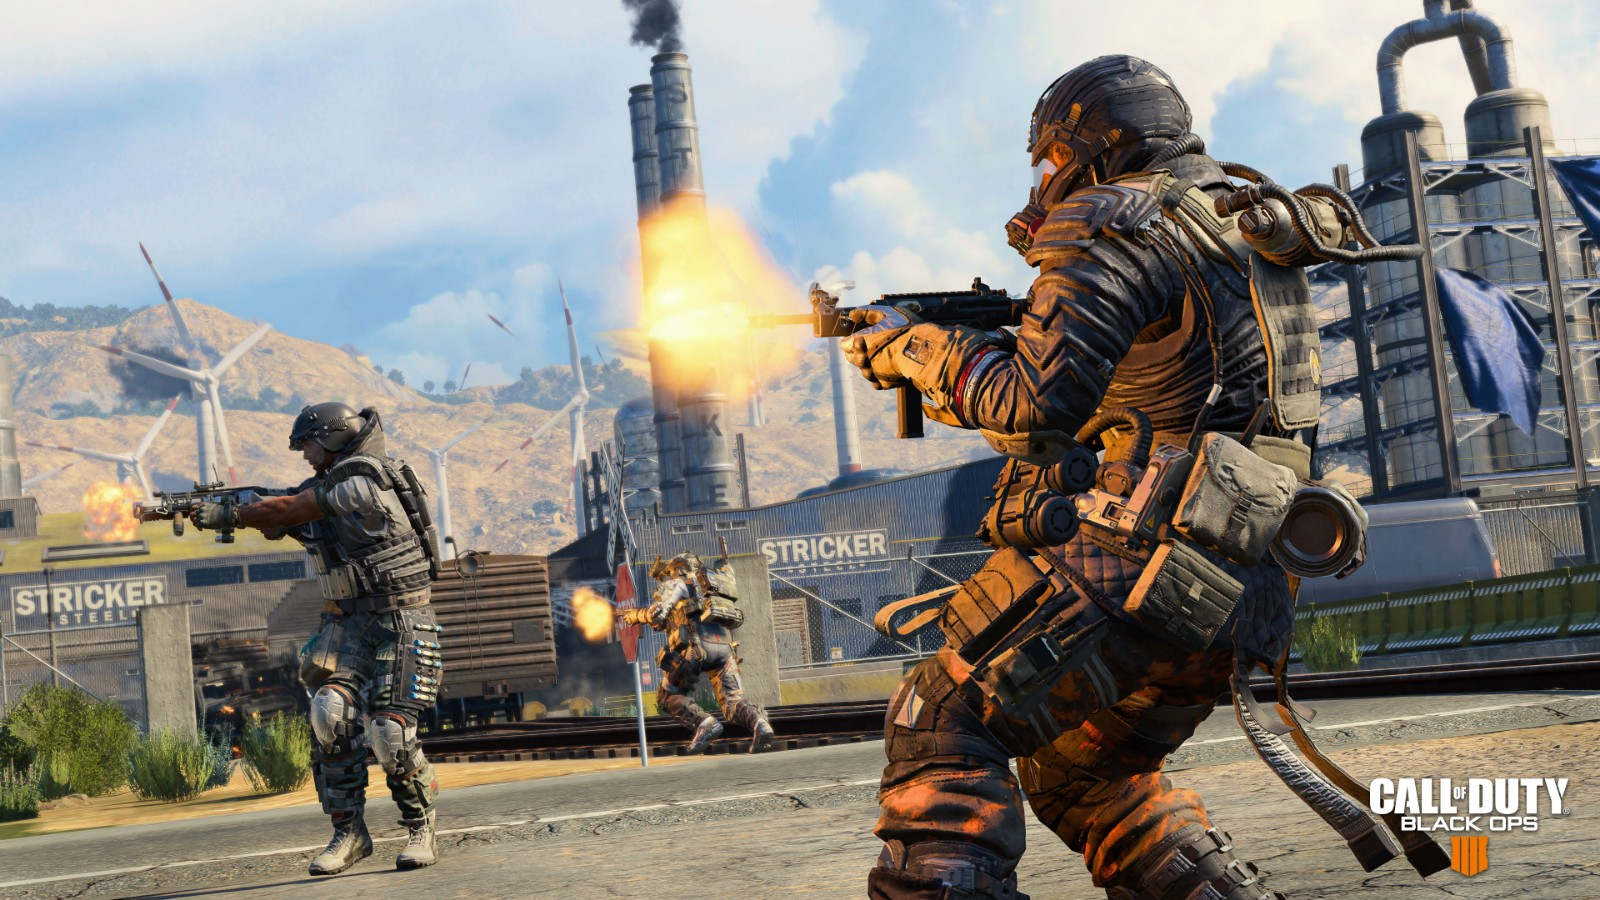 call of duty black ops 4 computer wallpaper 65563